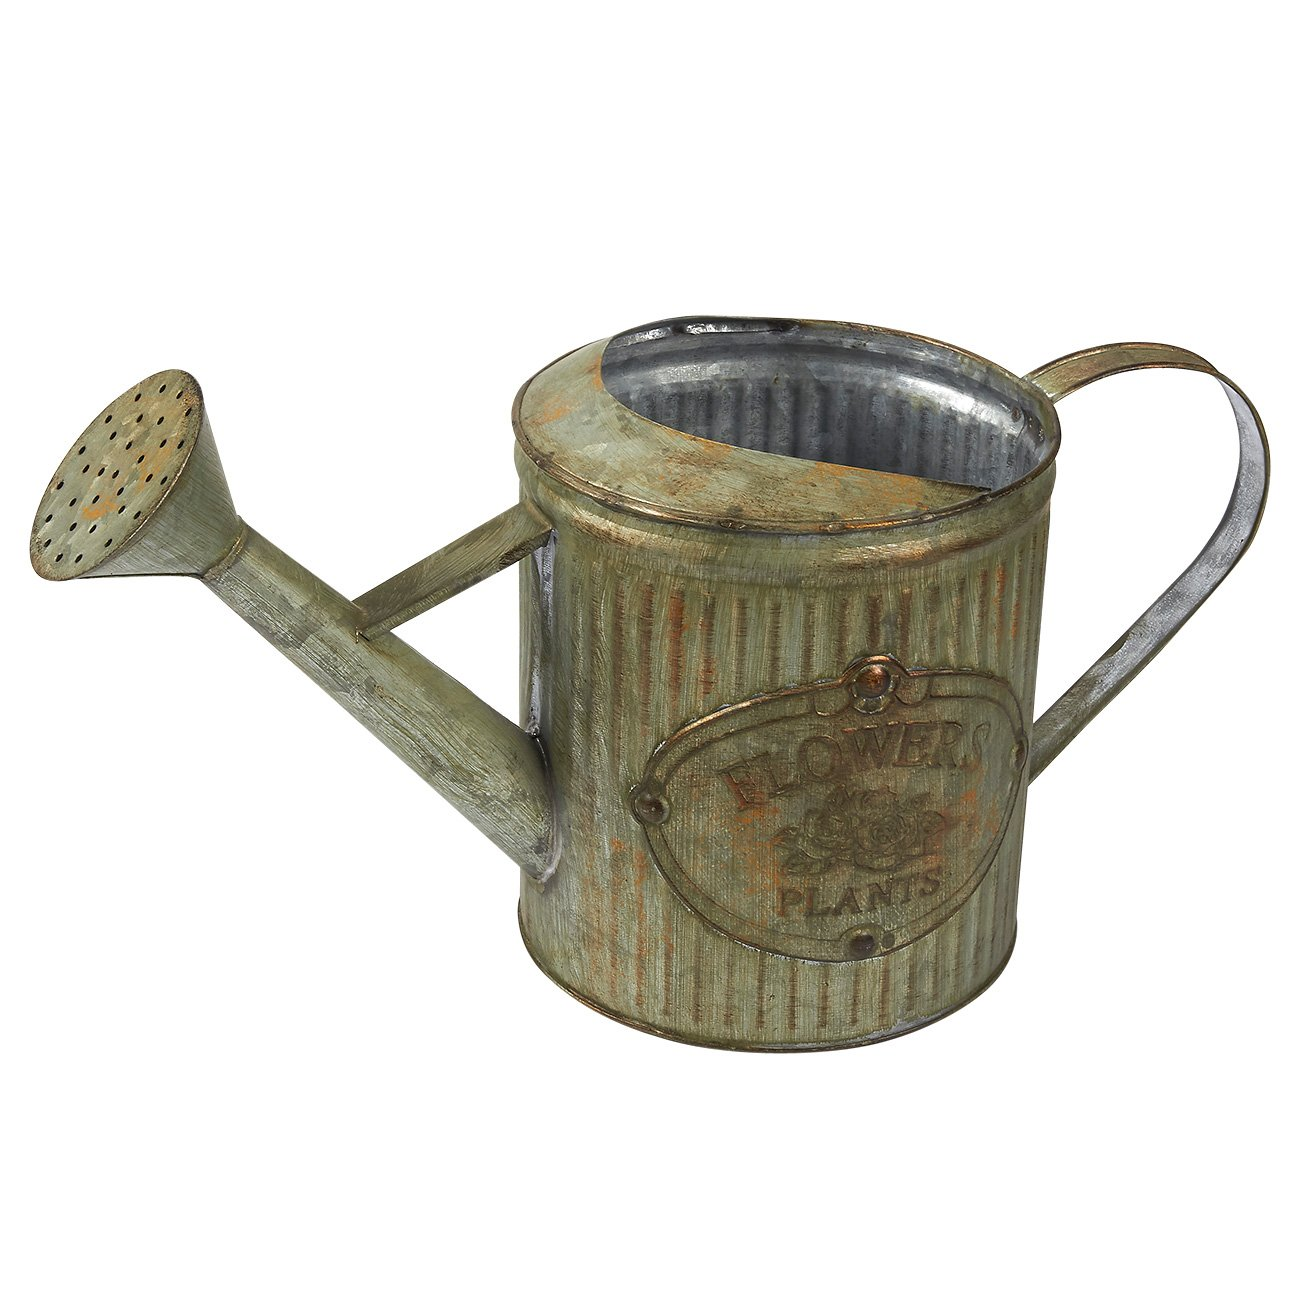 Juvale Decorative Watering Can - Rustic Iron Galvanized Water Jug with Handle, Antique Style for Home and Garden, 37 x 21 x 16 cm